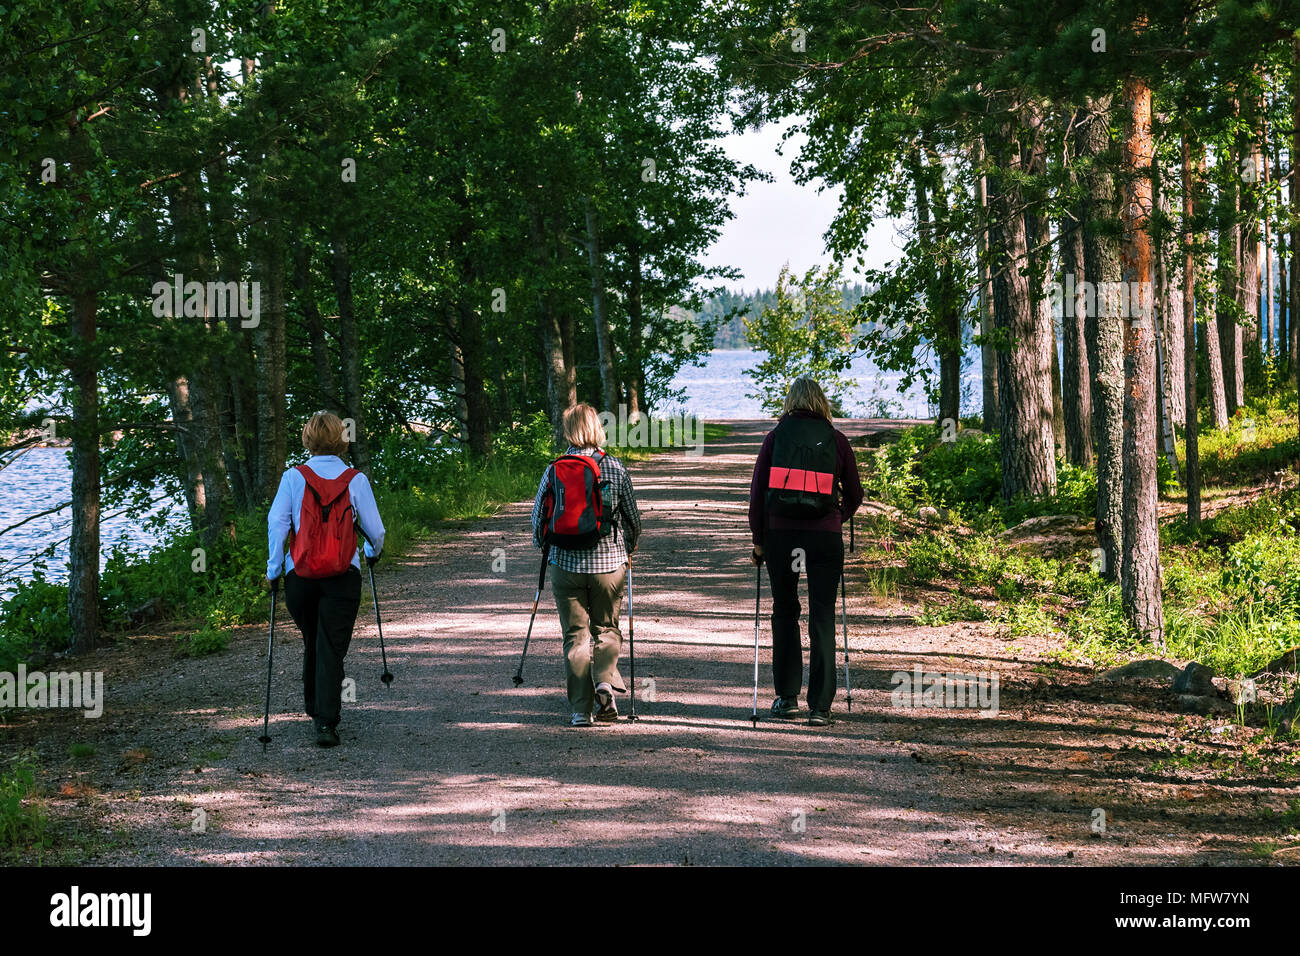 Three women with backpacks and walking sticks make a promenade along the sandy path along the shore of Lake Saimaa in the Finnish city of Imatra. Stock Photo